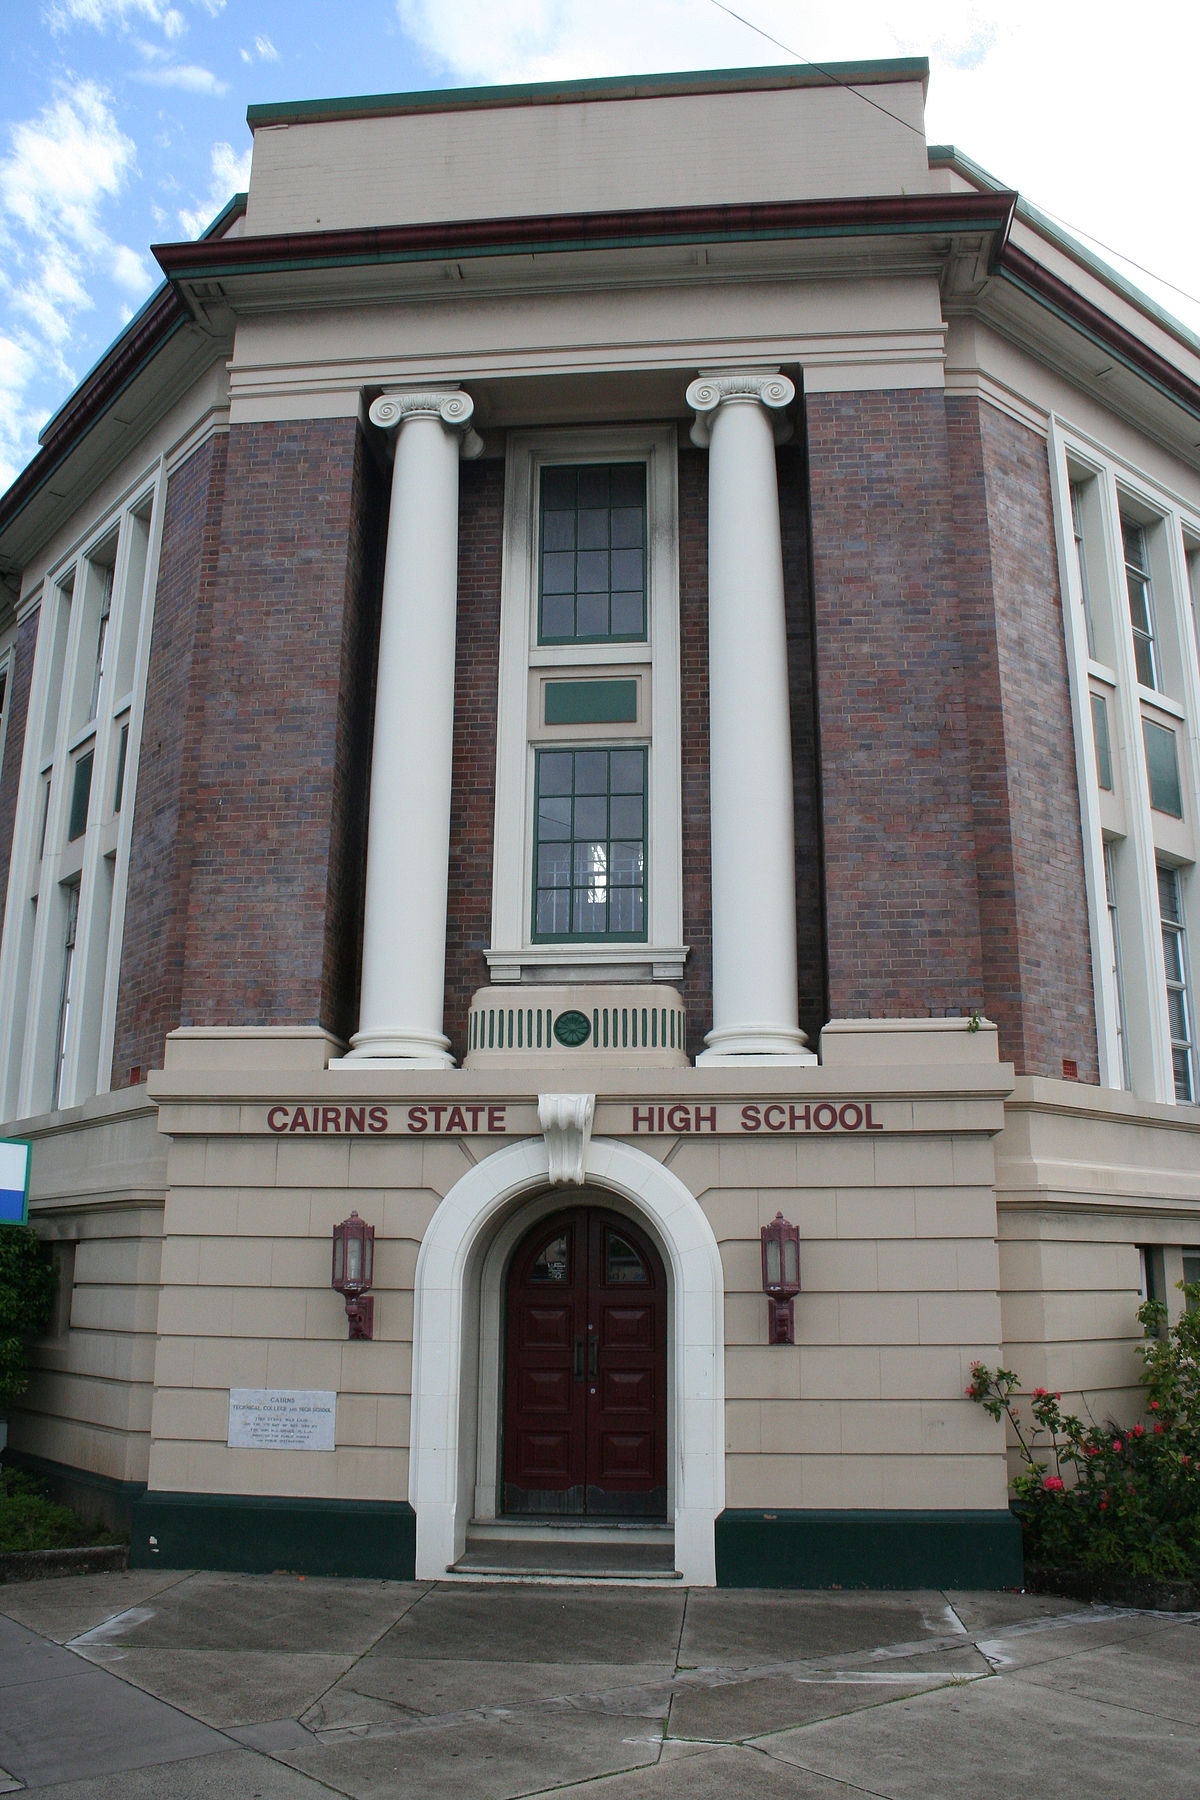 Cairns Technical College And High School Building